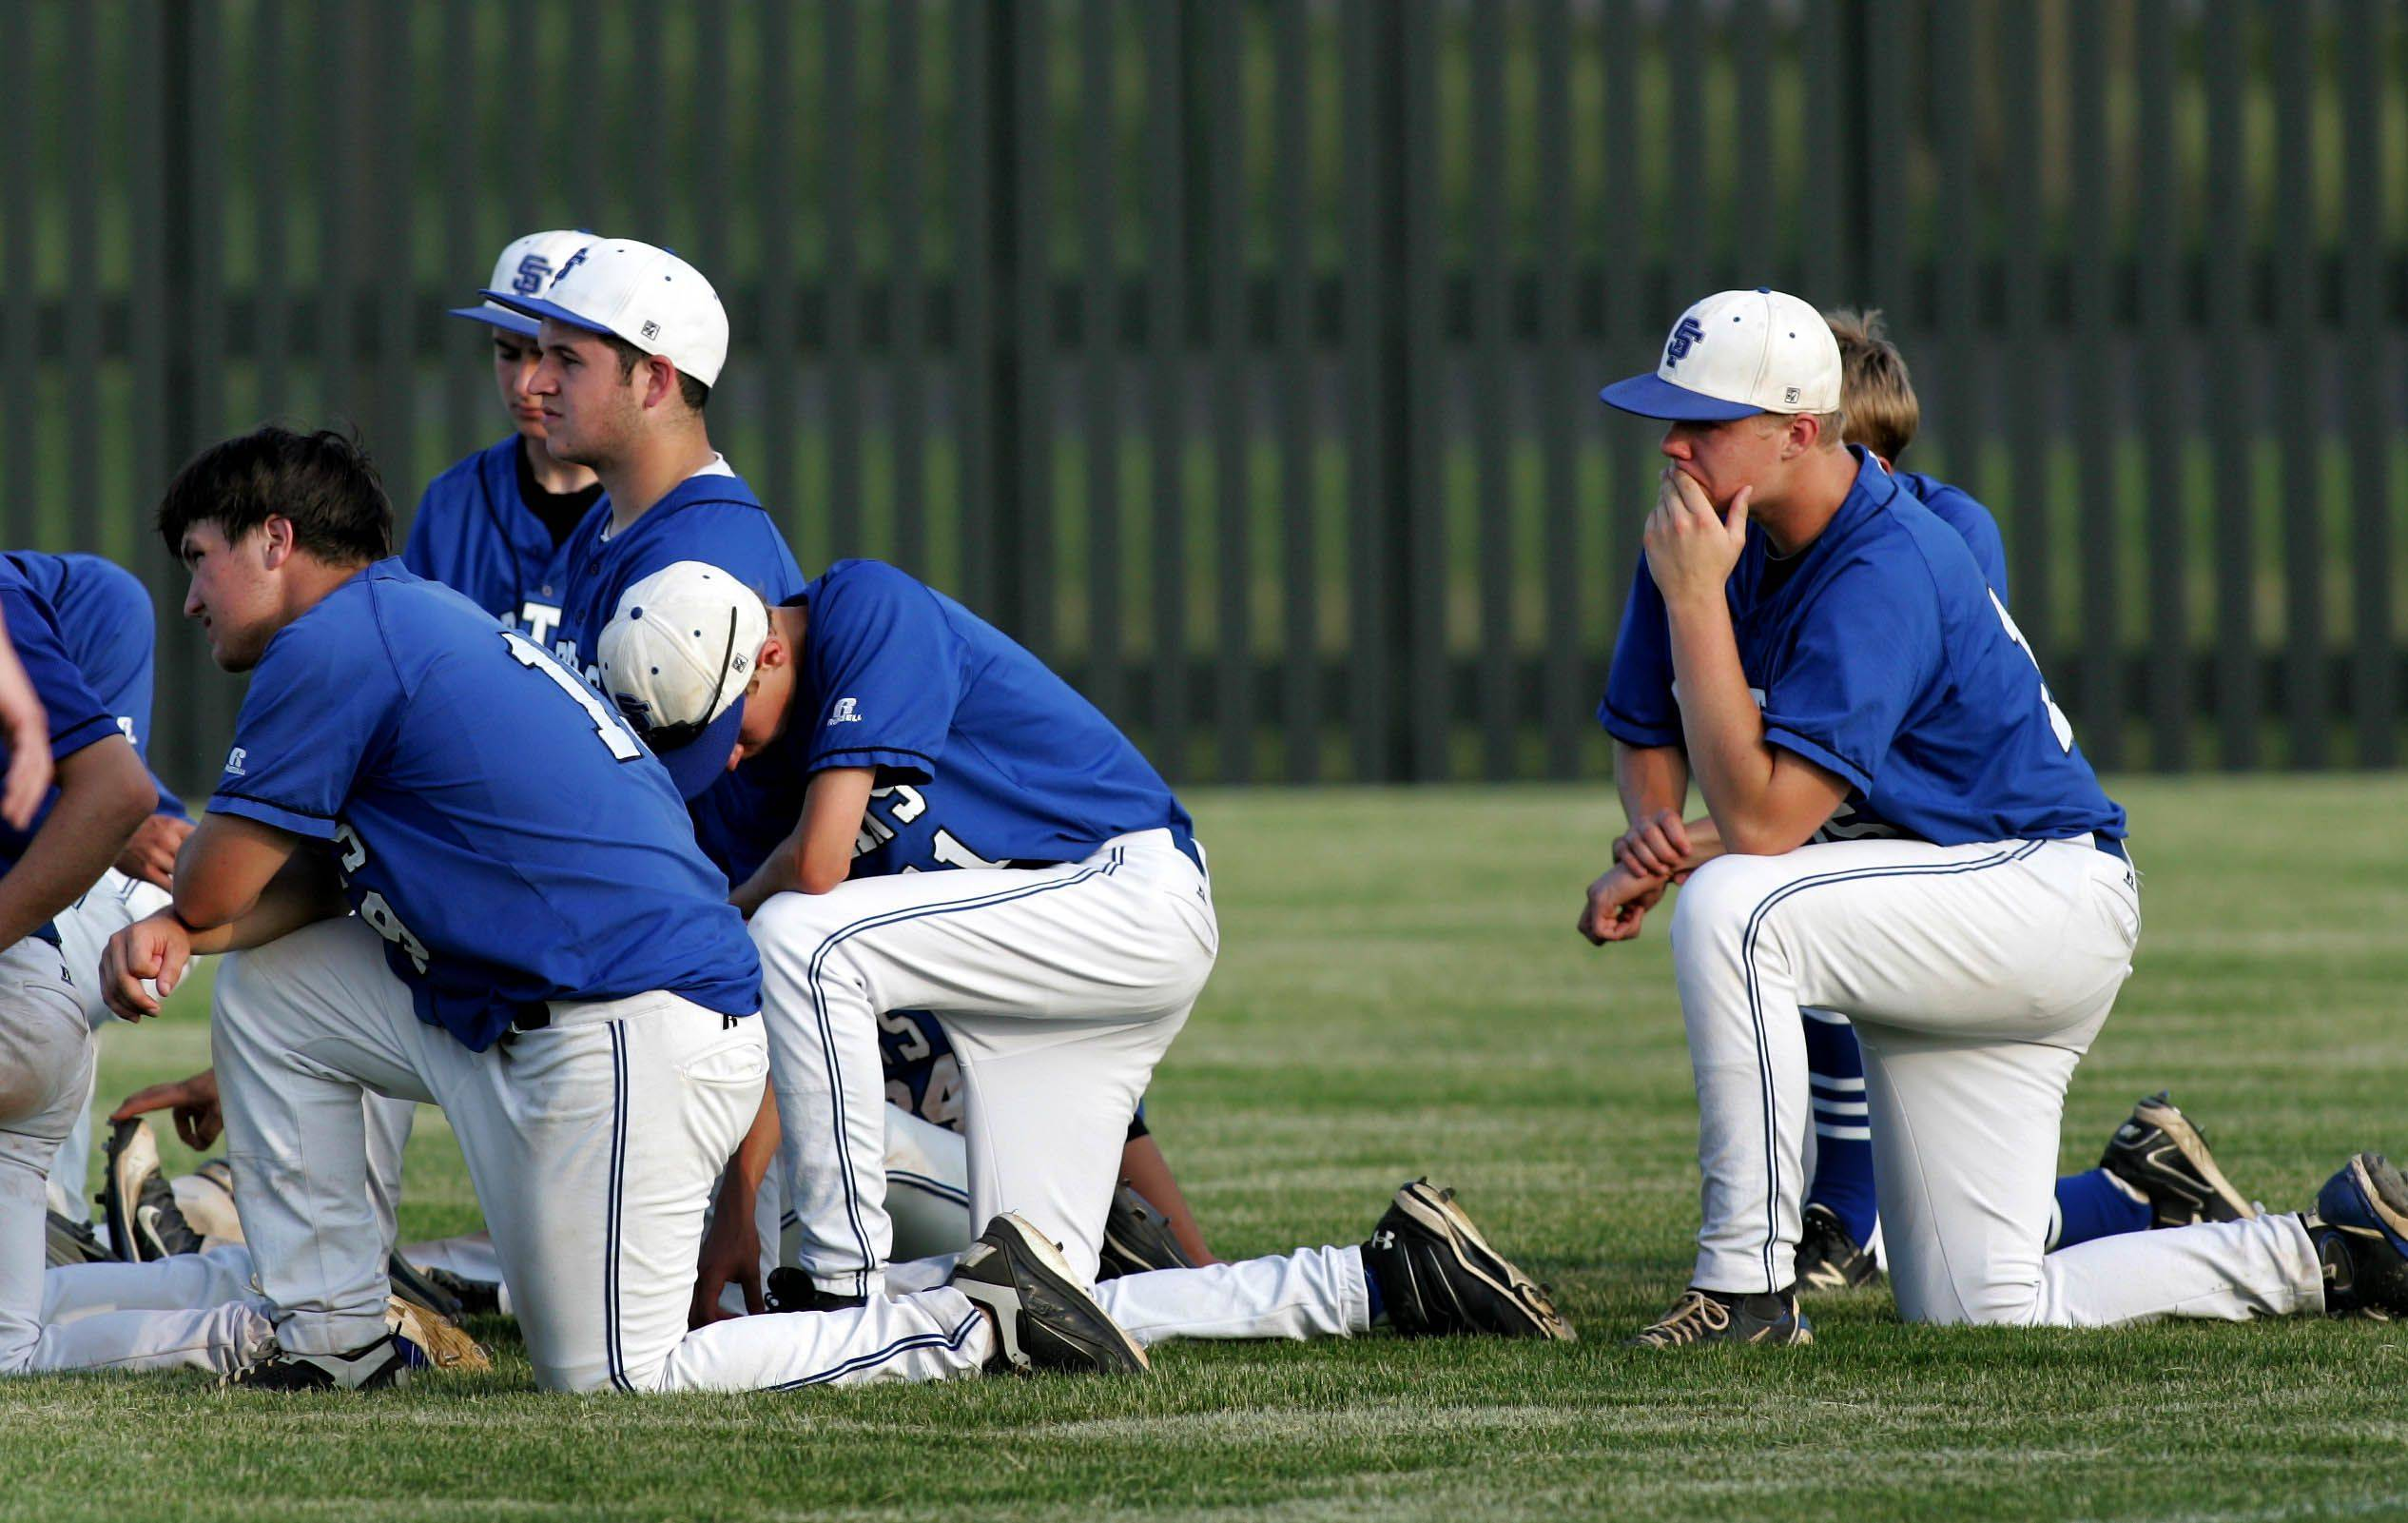 St. Francis react after their loss to Nazareth Academy in Class 3A supersectional baseball Monday in Naperville.